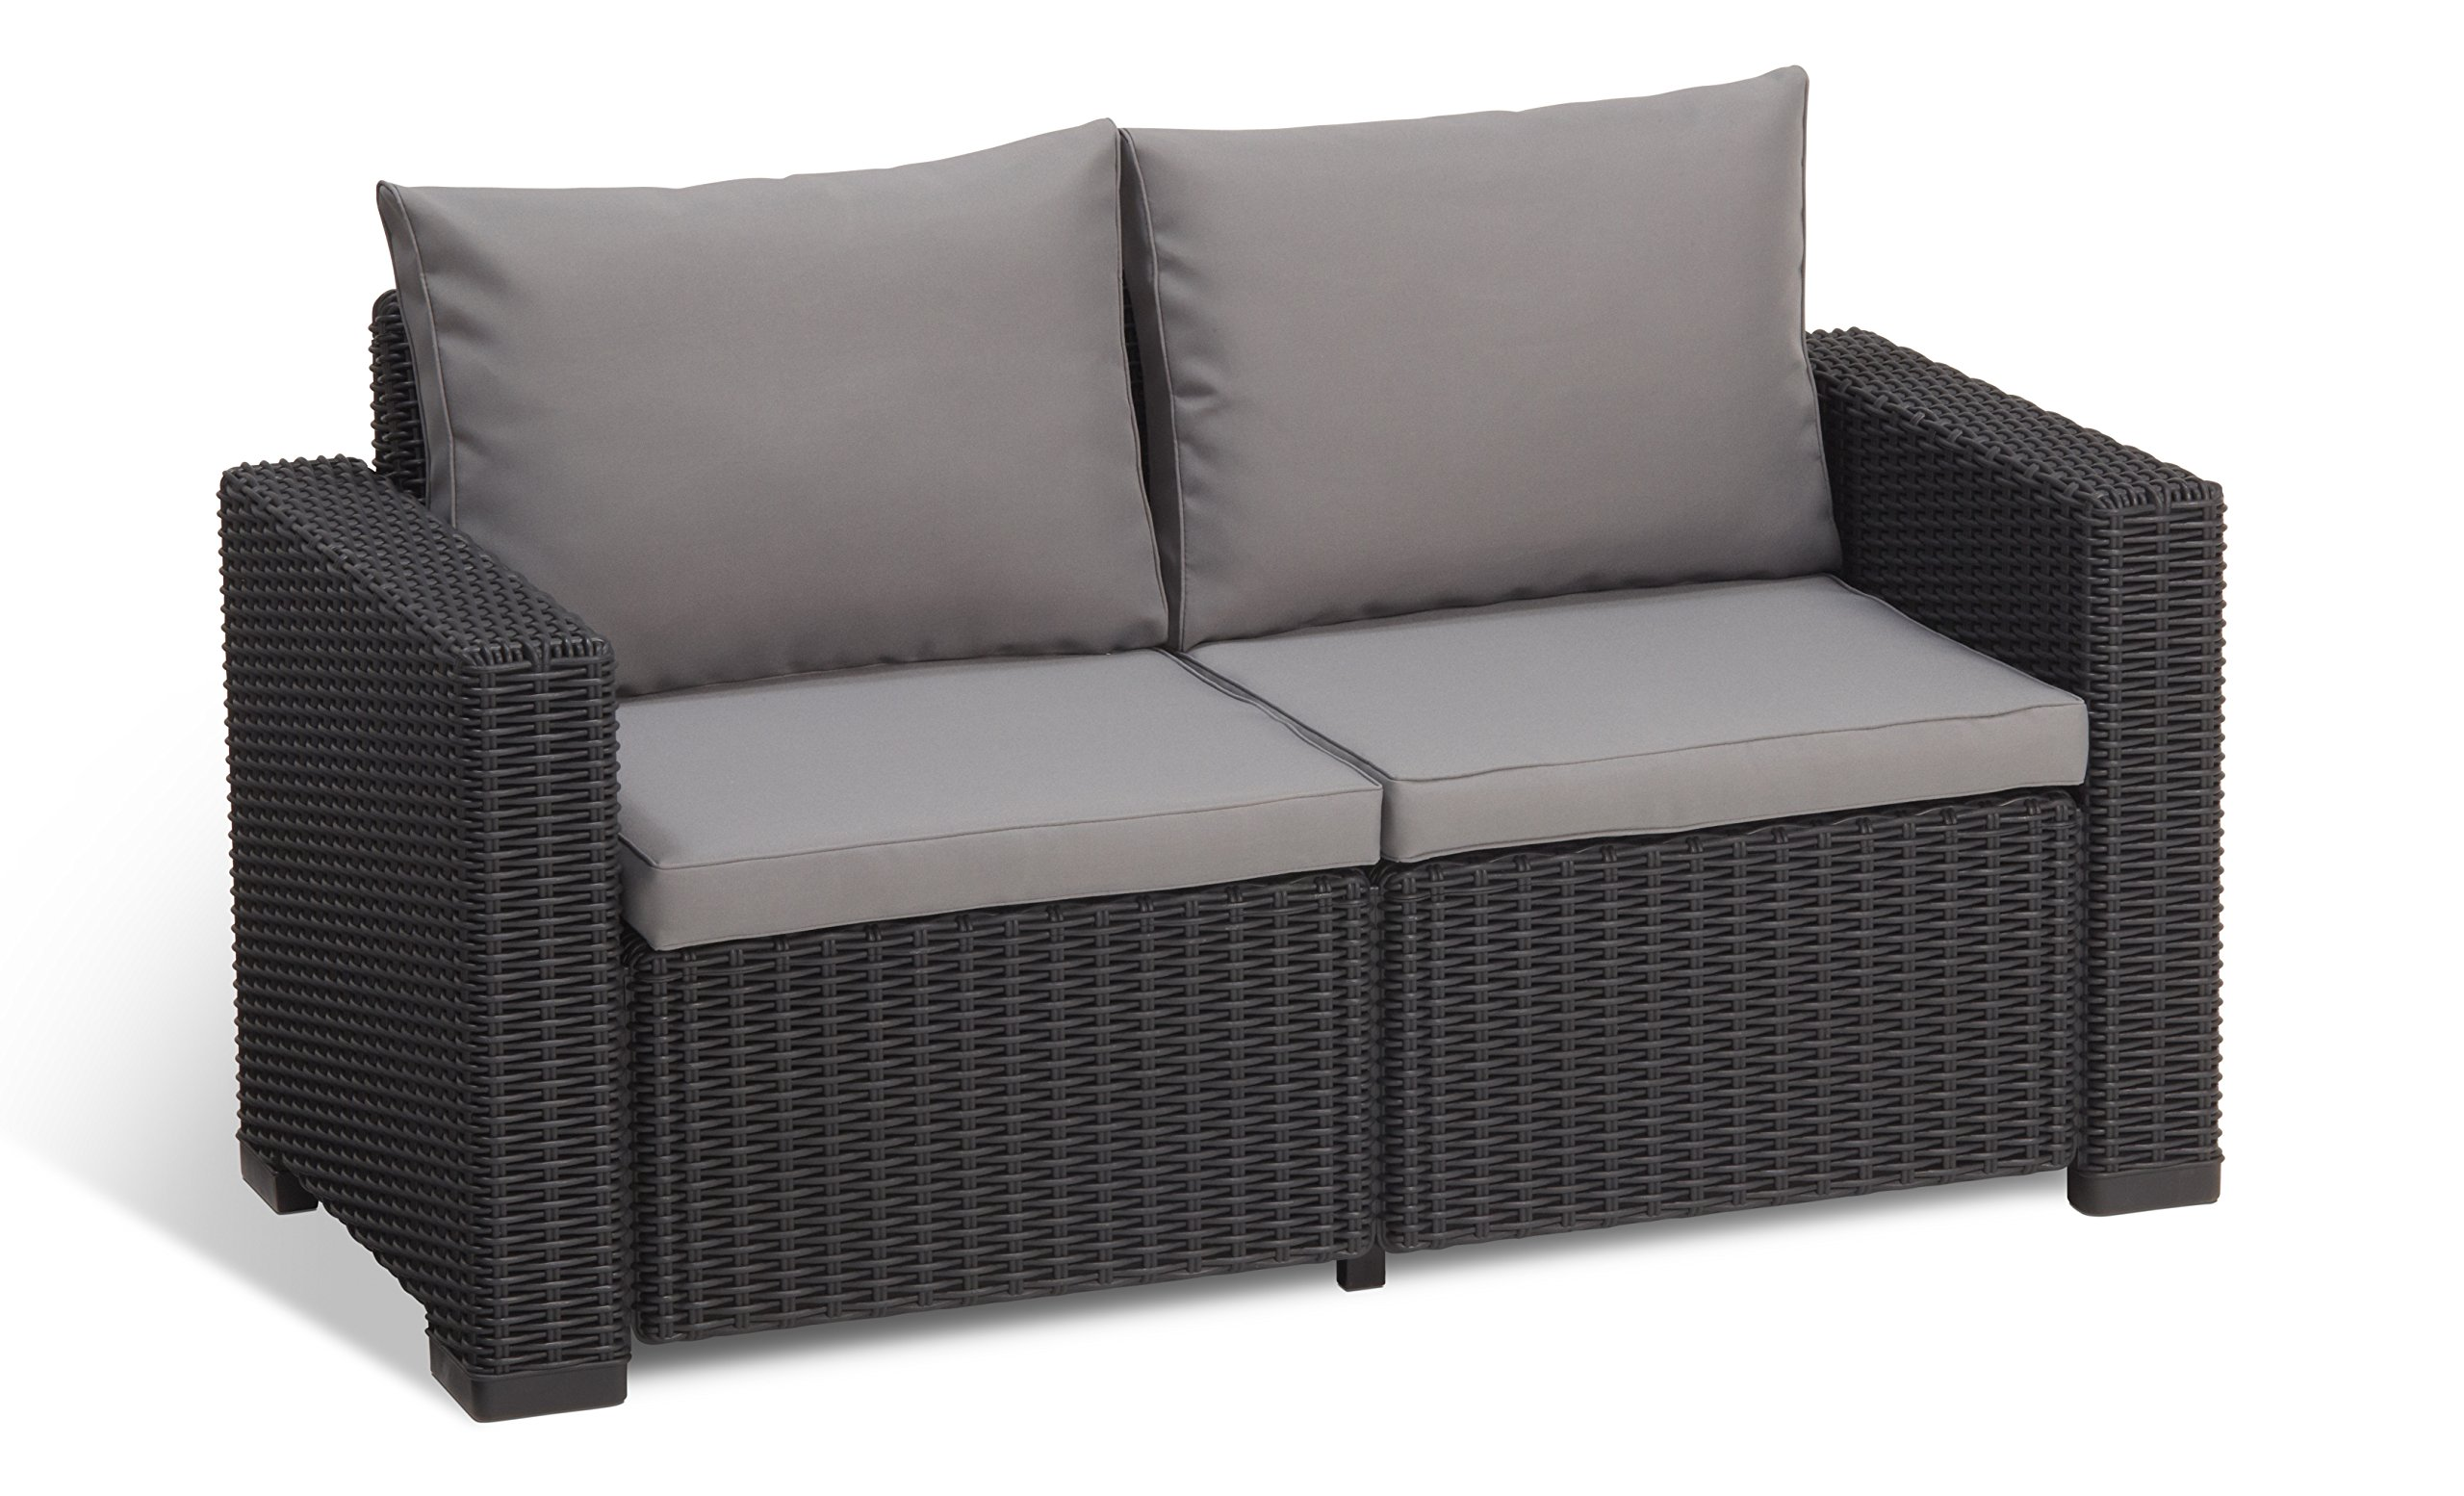 2 Seater Rattan Sofa Bench Chair Cushioned Indoor Outdoor Pool